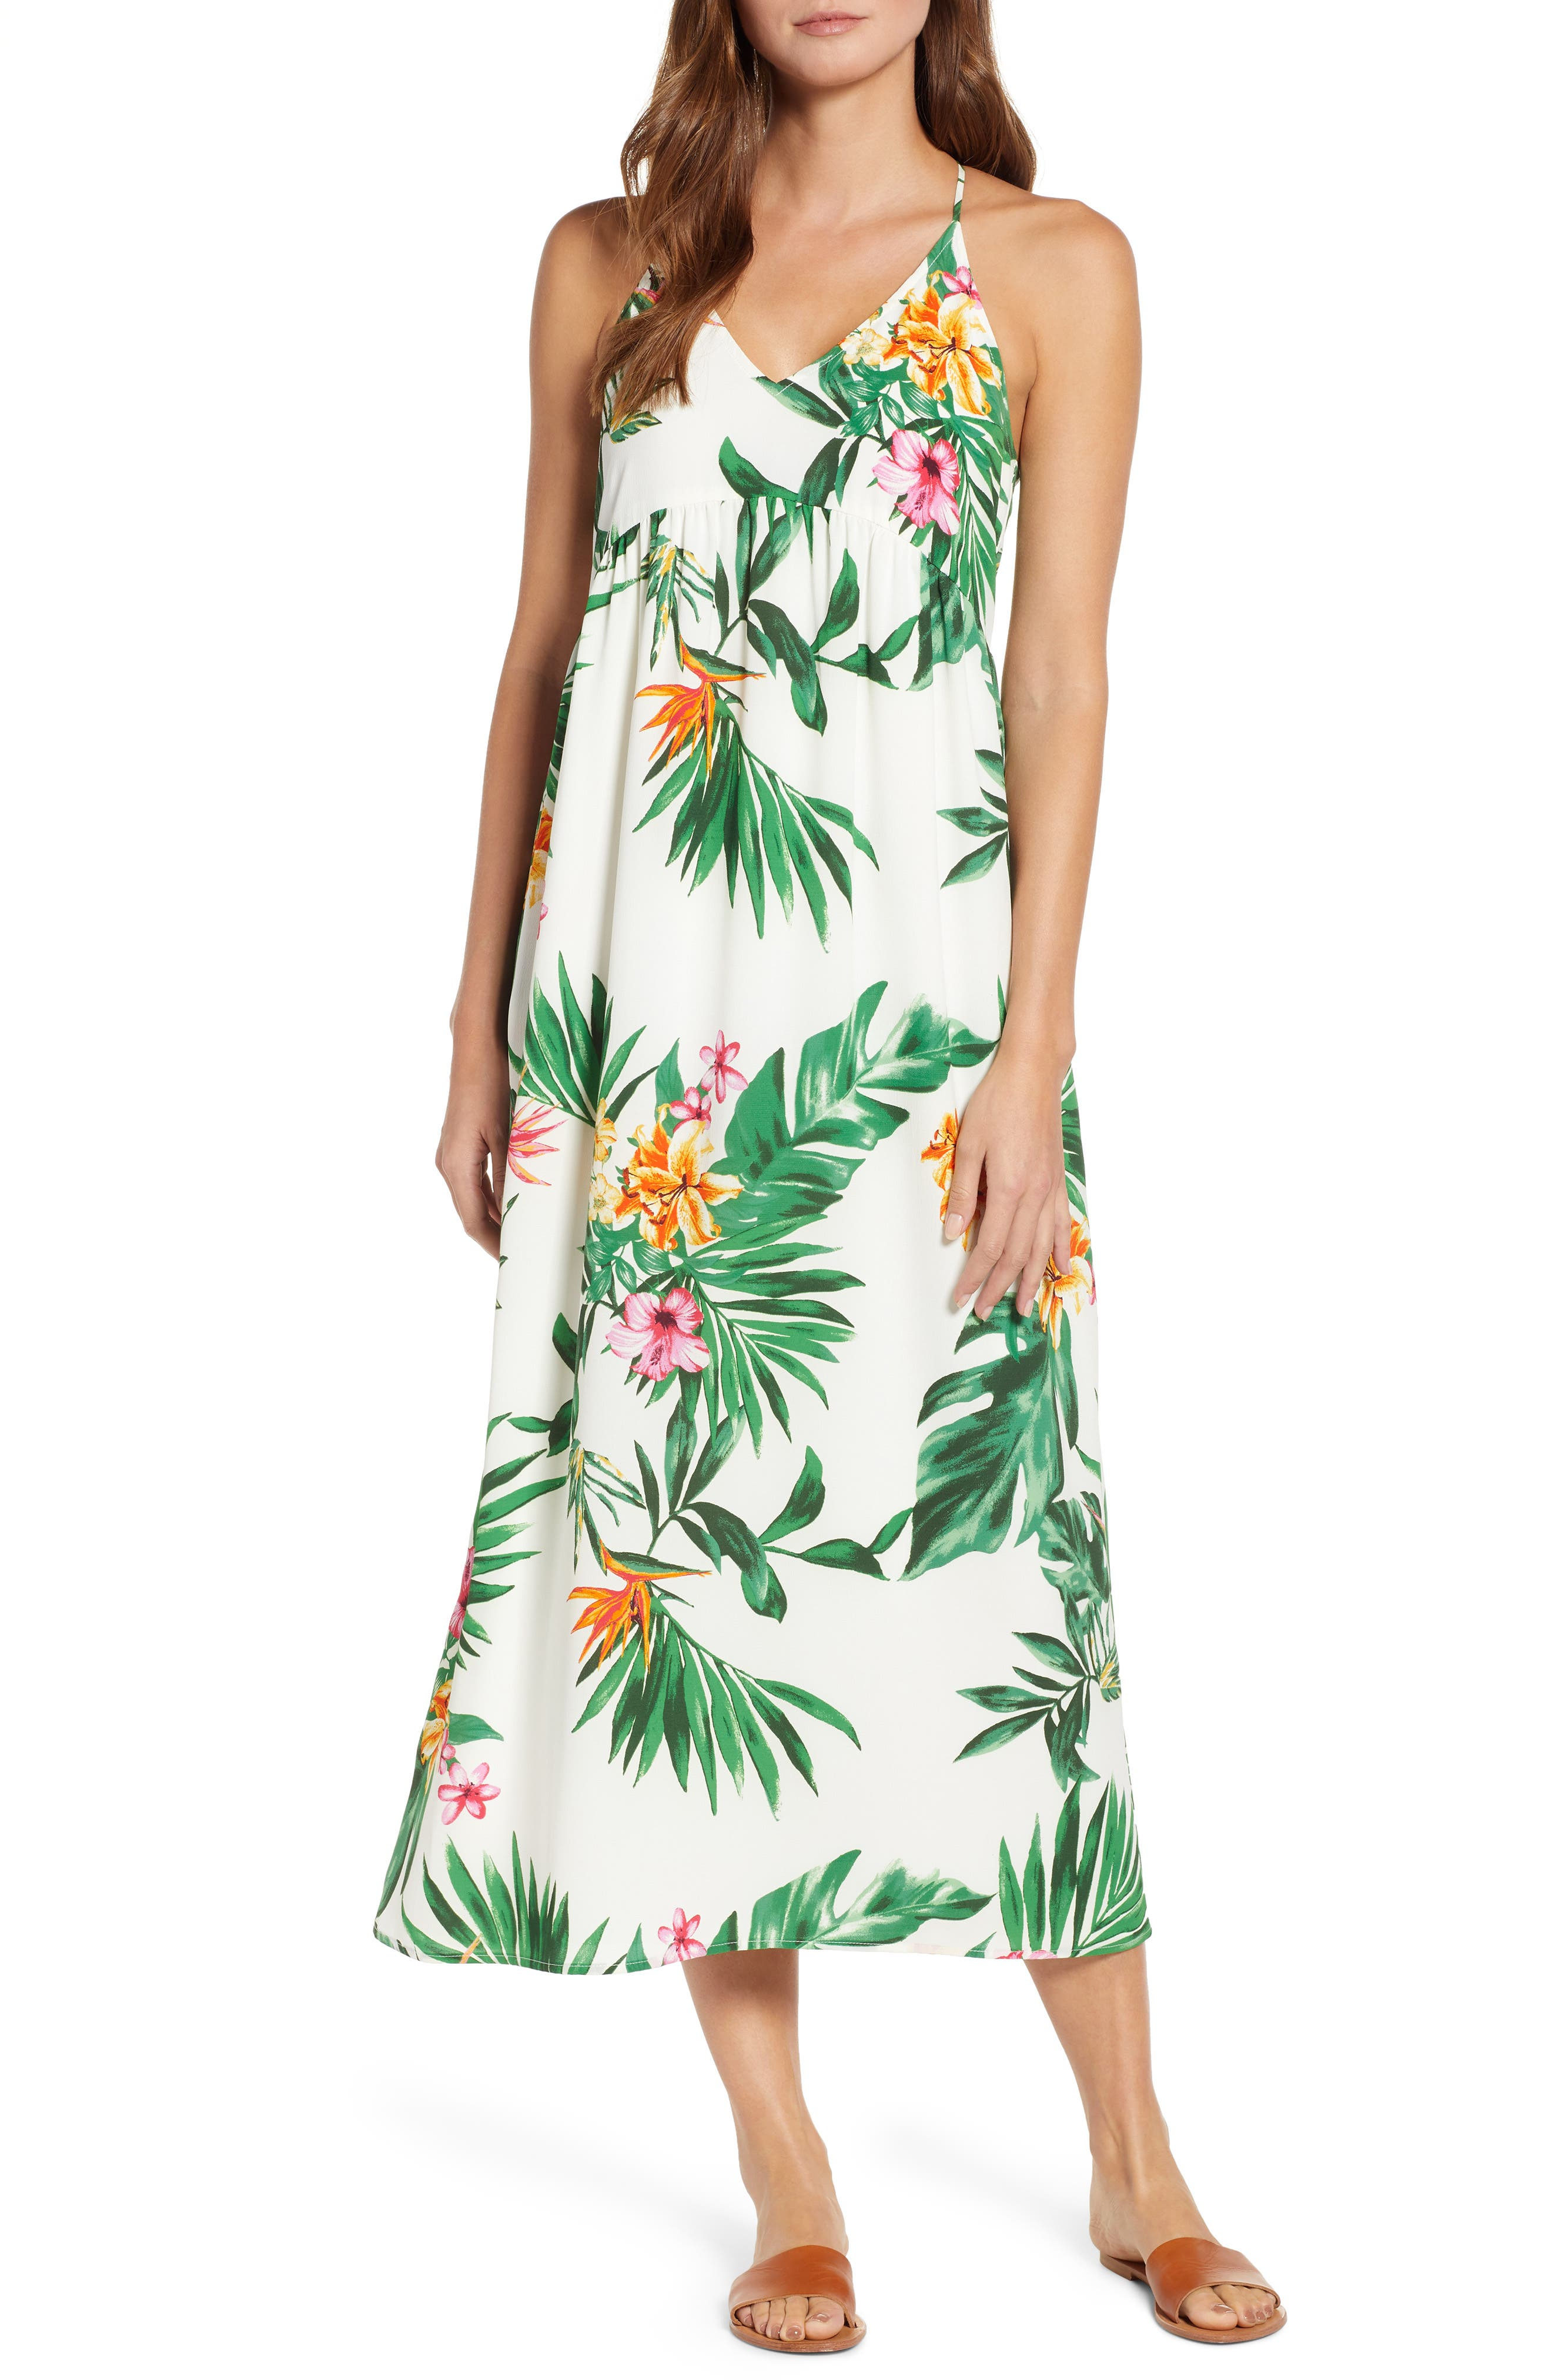 x Hi Sugarplum! Palm Springs Festival Maxi Dress,                             Main thumbnail 1, color,                             150